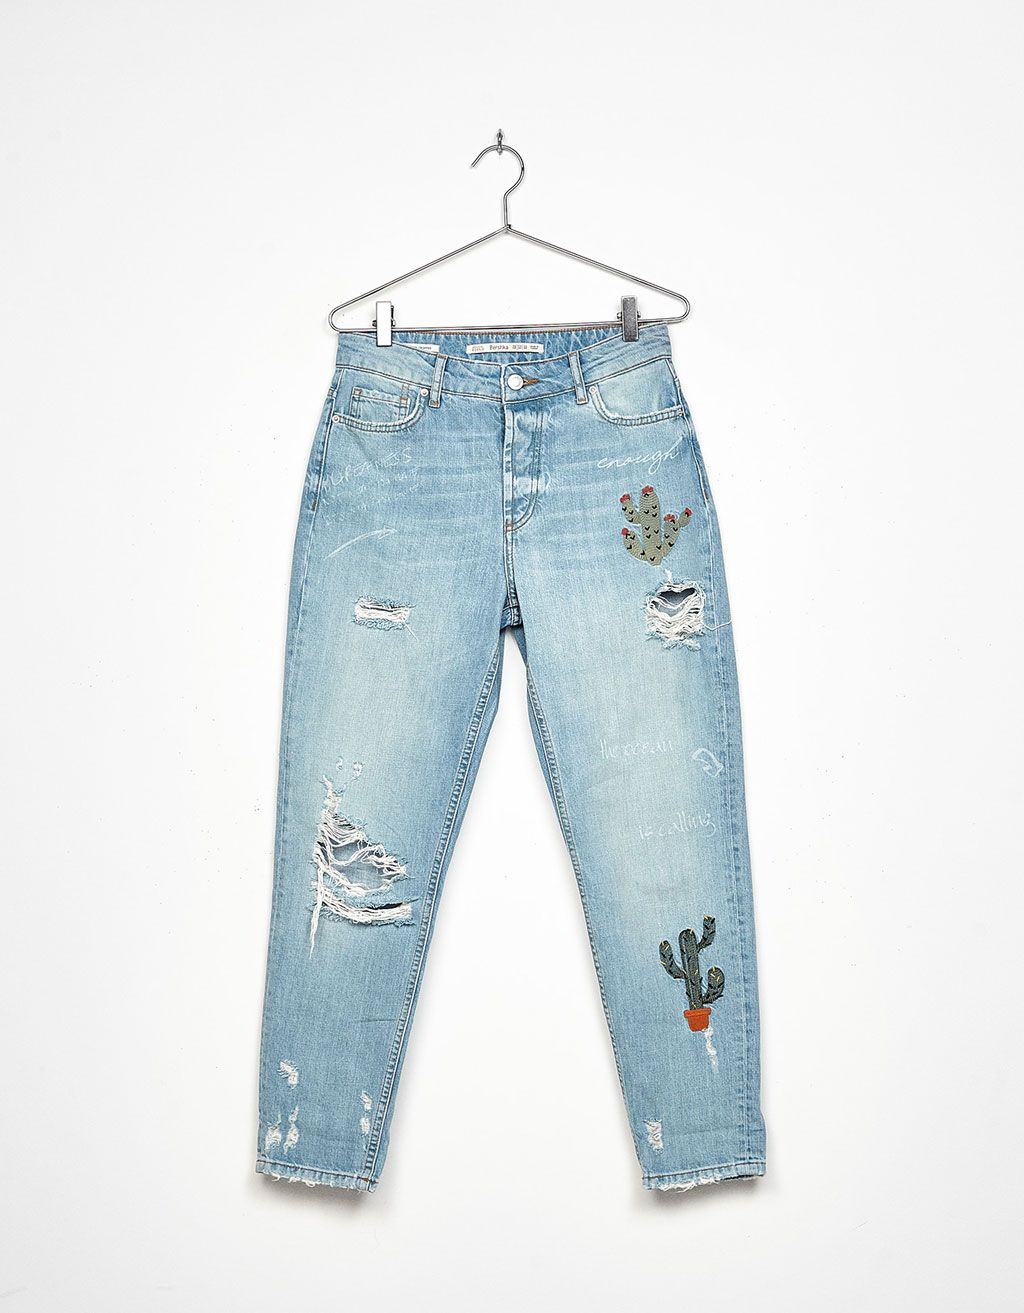 10c92800f8 Relaxed fit jeans with cactus embroidery - Jeans - Bershka Ukraine